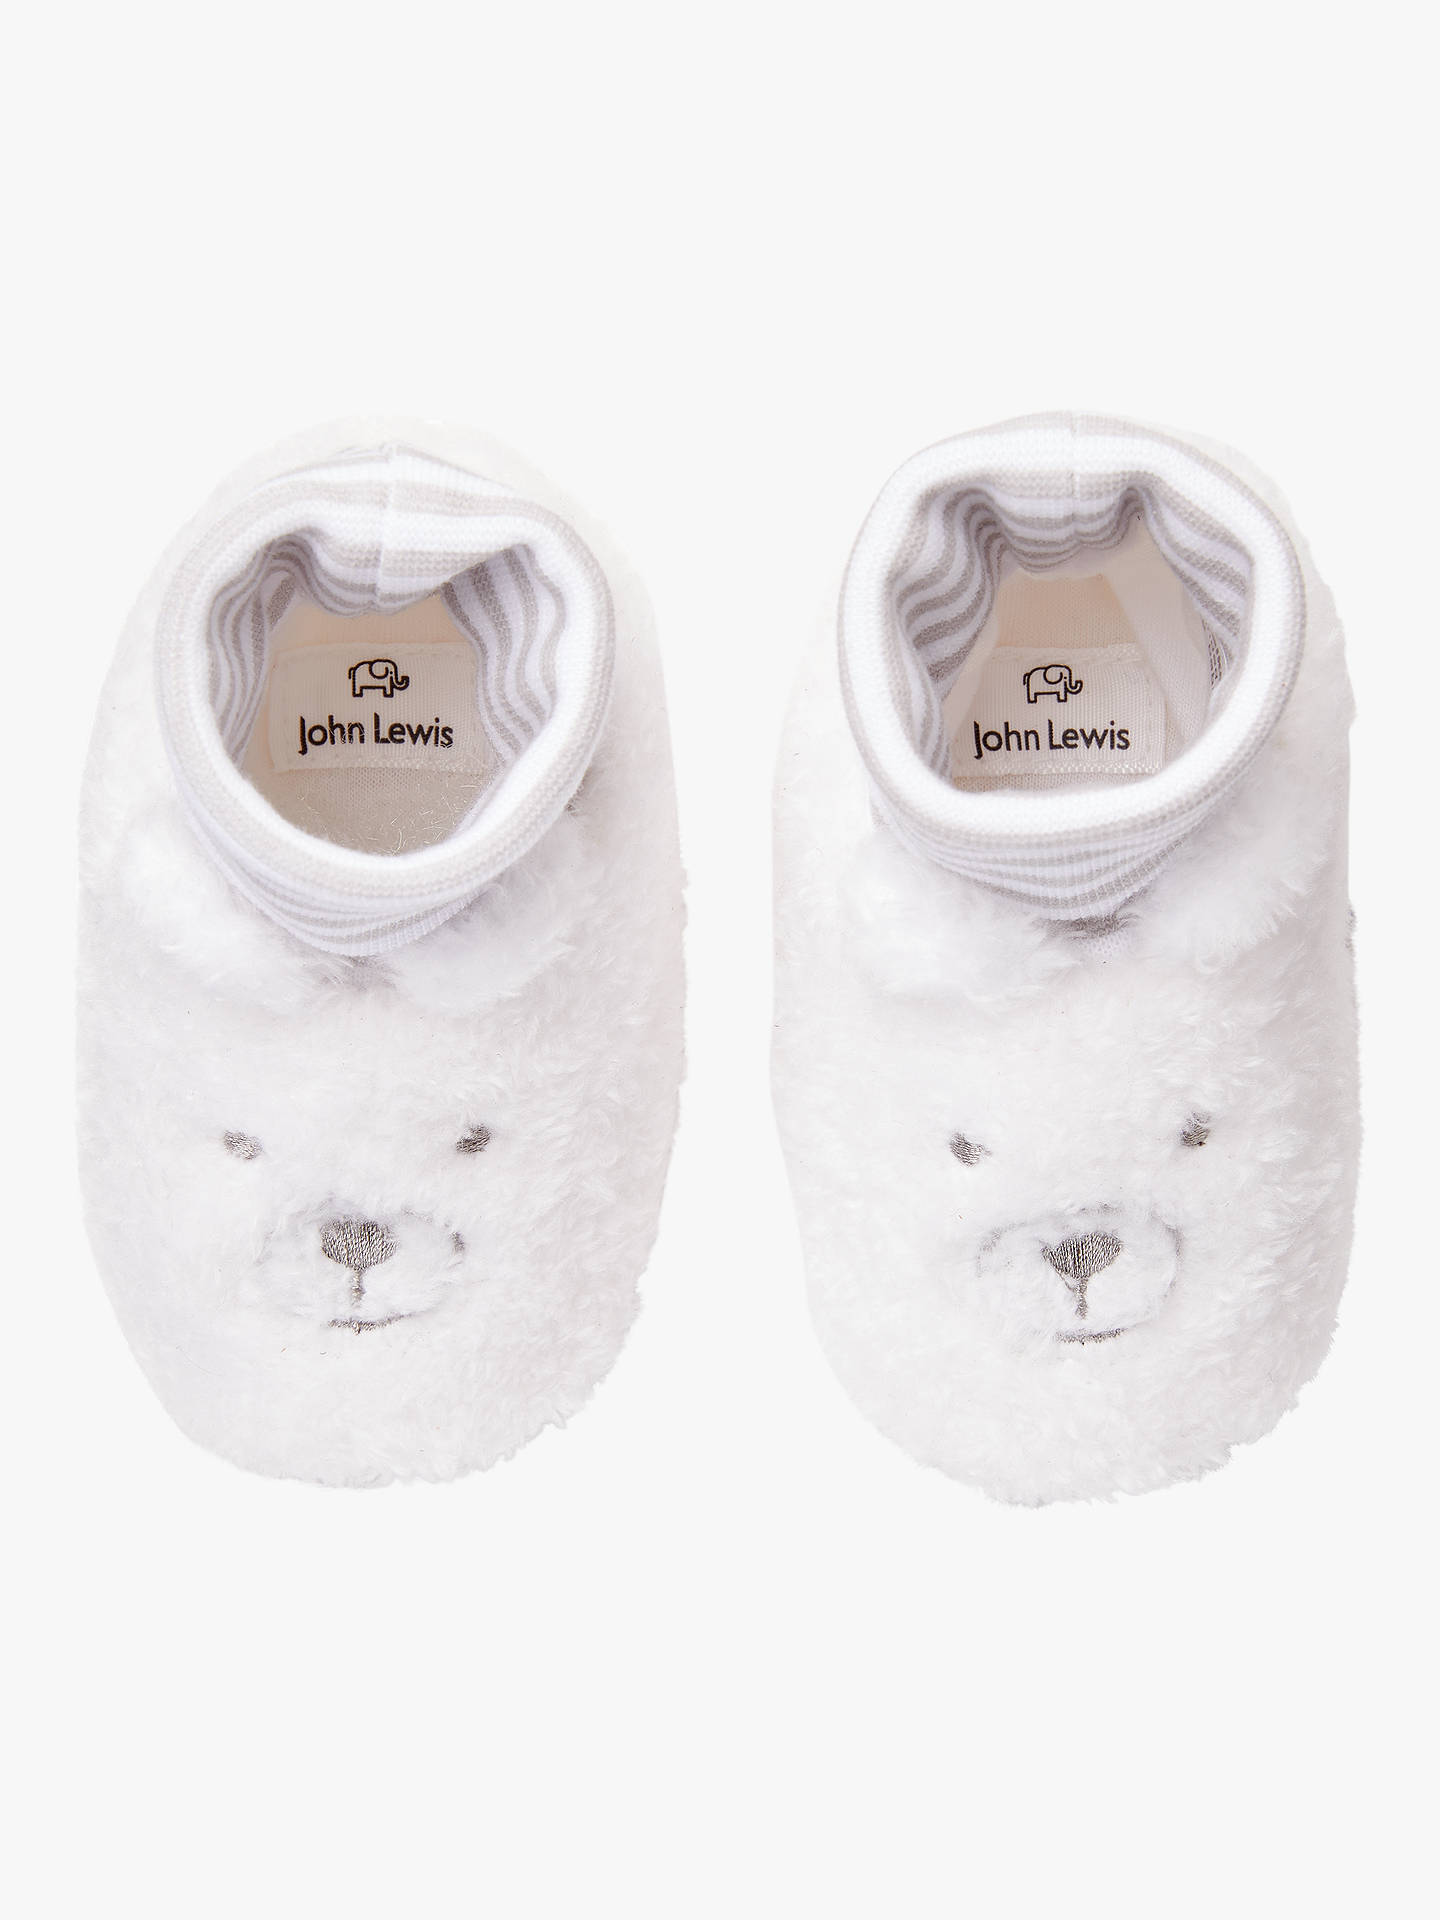 BuyJohn Lewis & Partners Super Socktop Bear Slippers, Grey/White, 0-3 months Online at johnlewis.com